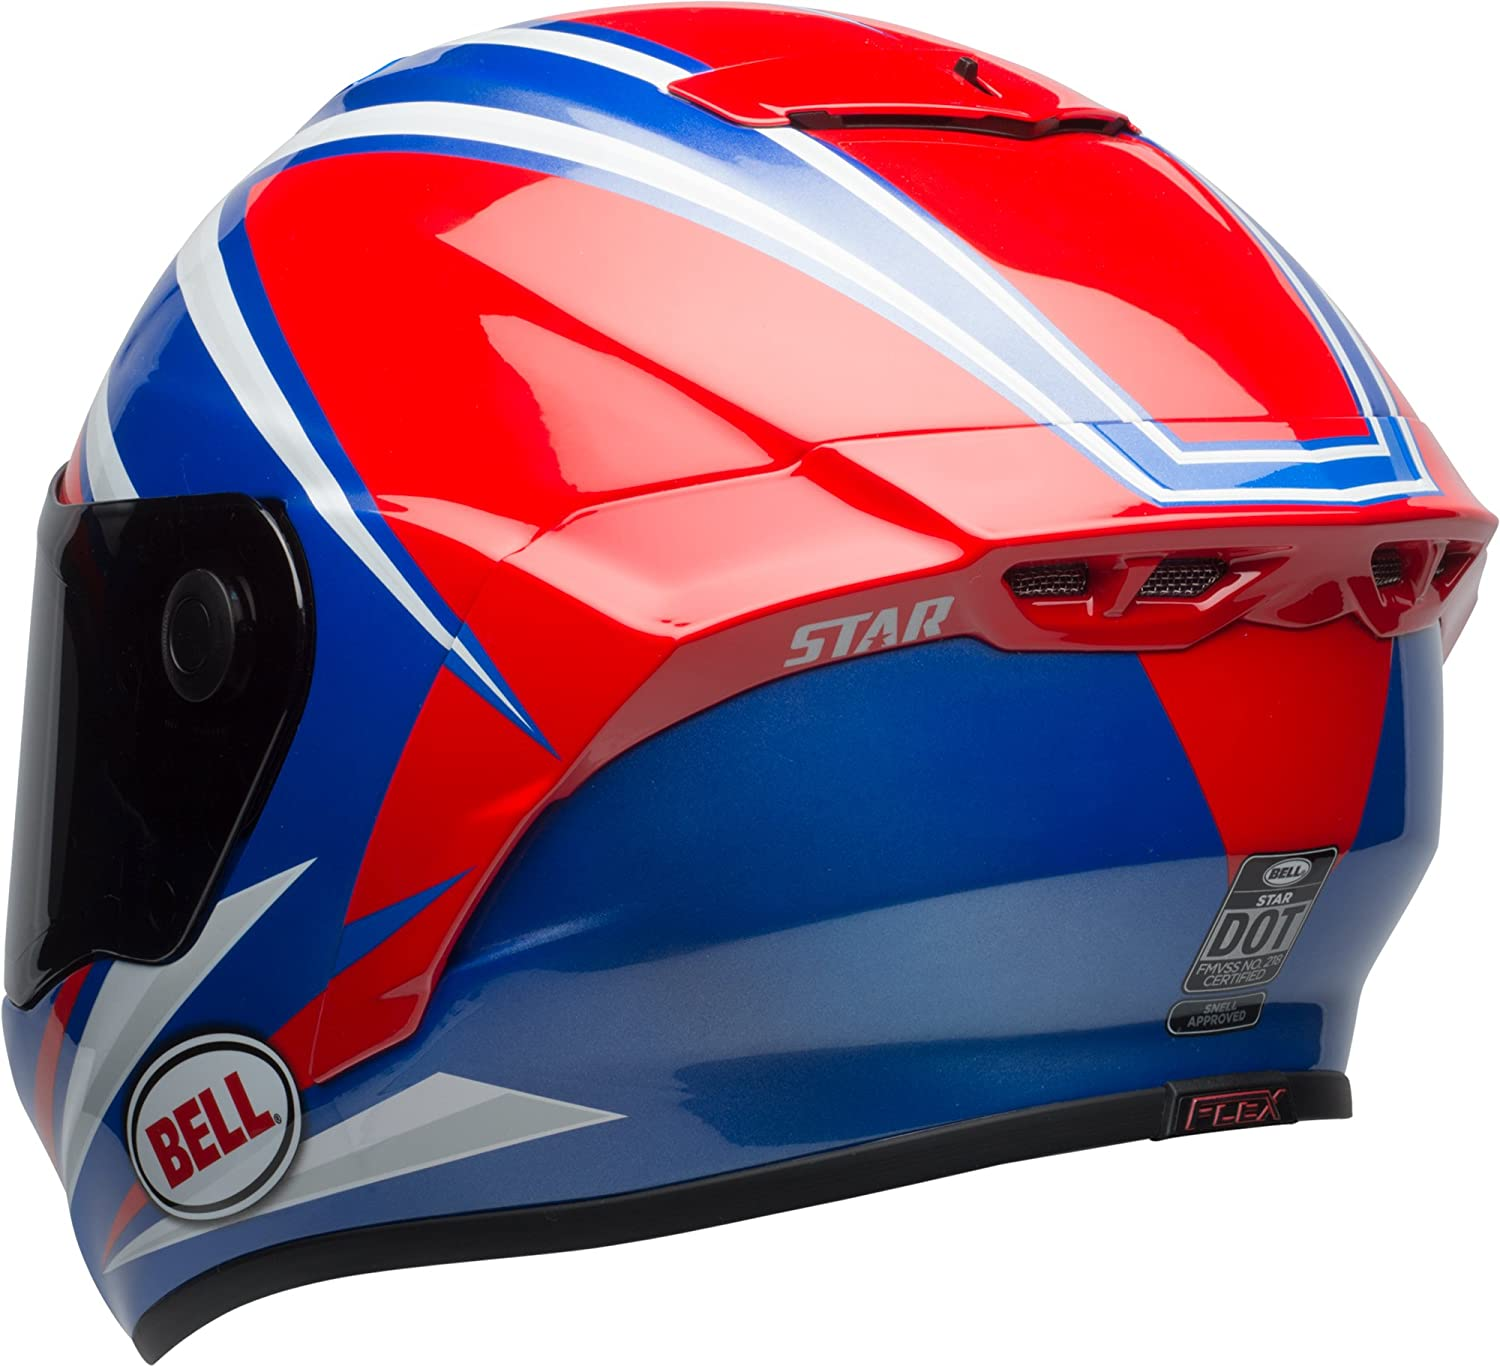 Gloss Red//Blue Torsion, XX-Large Bell Star MIPS Equipped Street Motorcycle Helmet